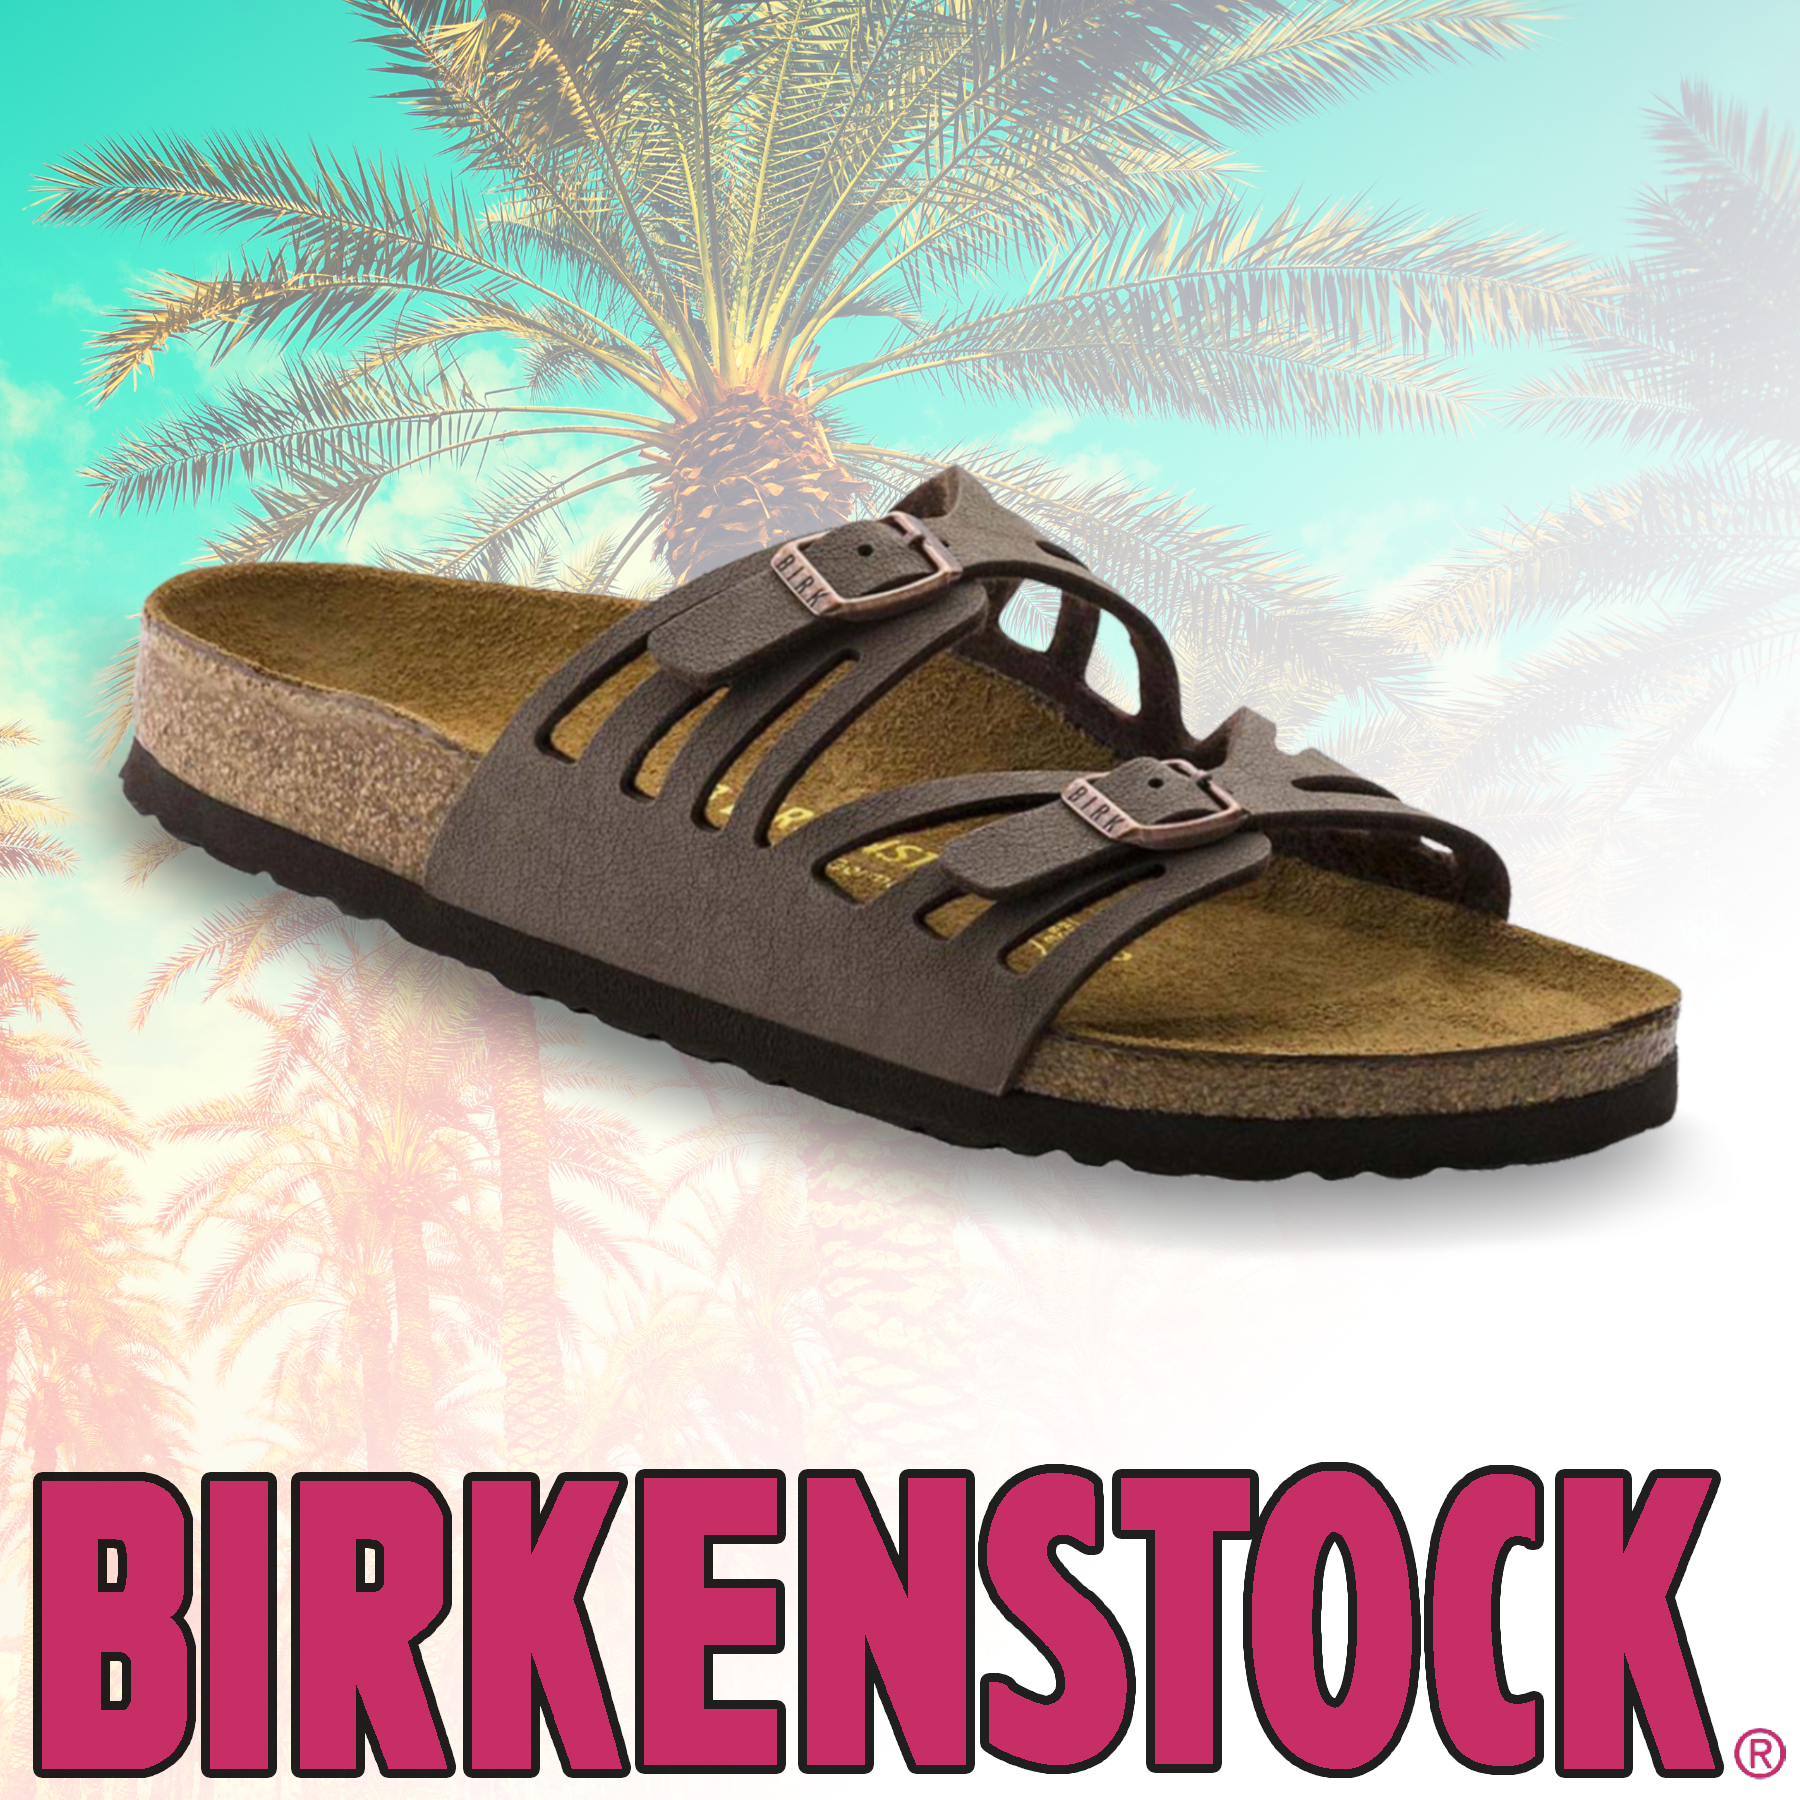 b7d53dc922e676 FitFlop The Skinny Comfy Flip Flops - Womens in 2019